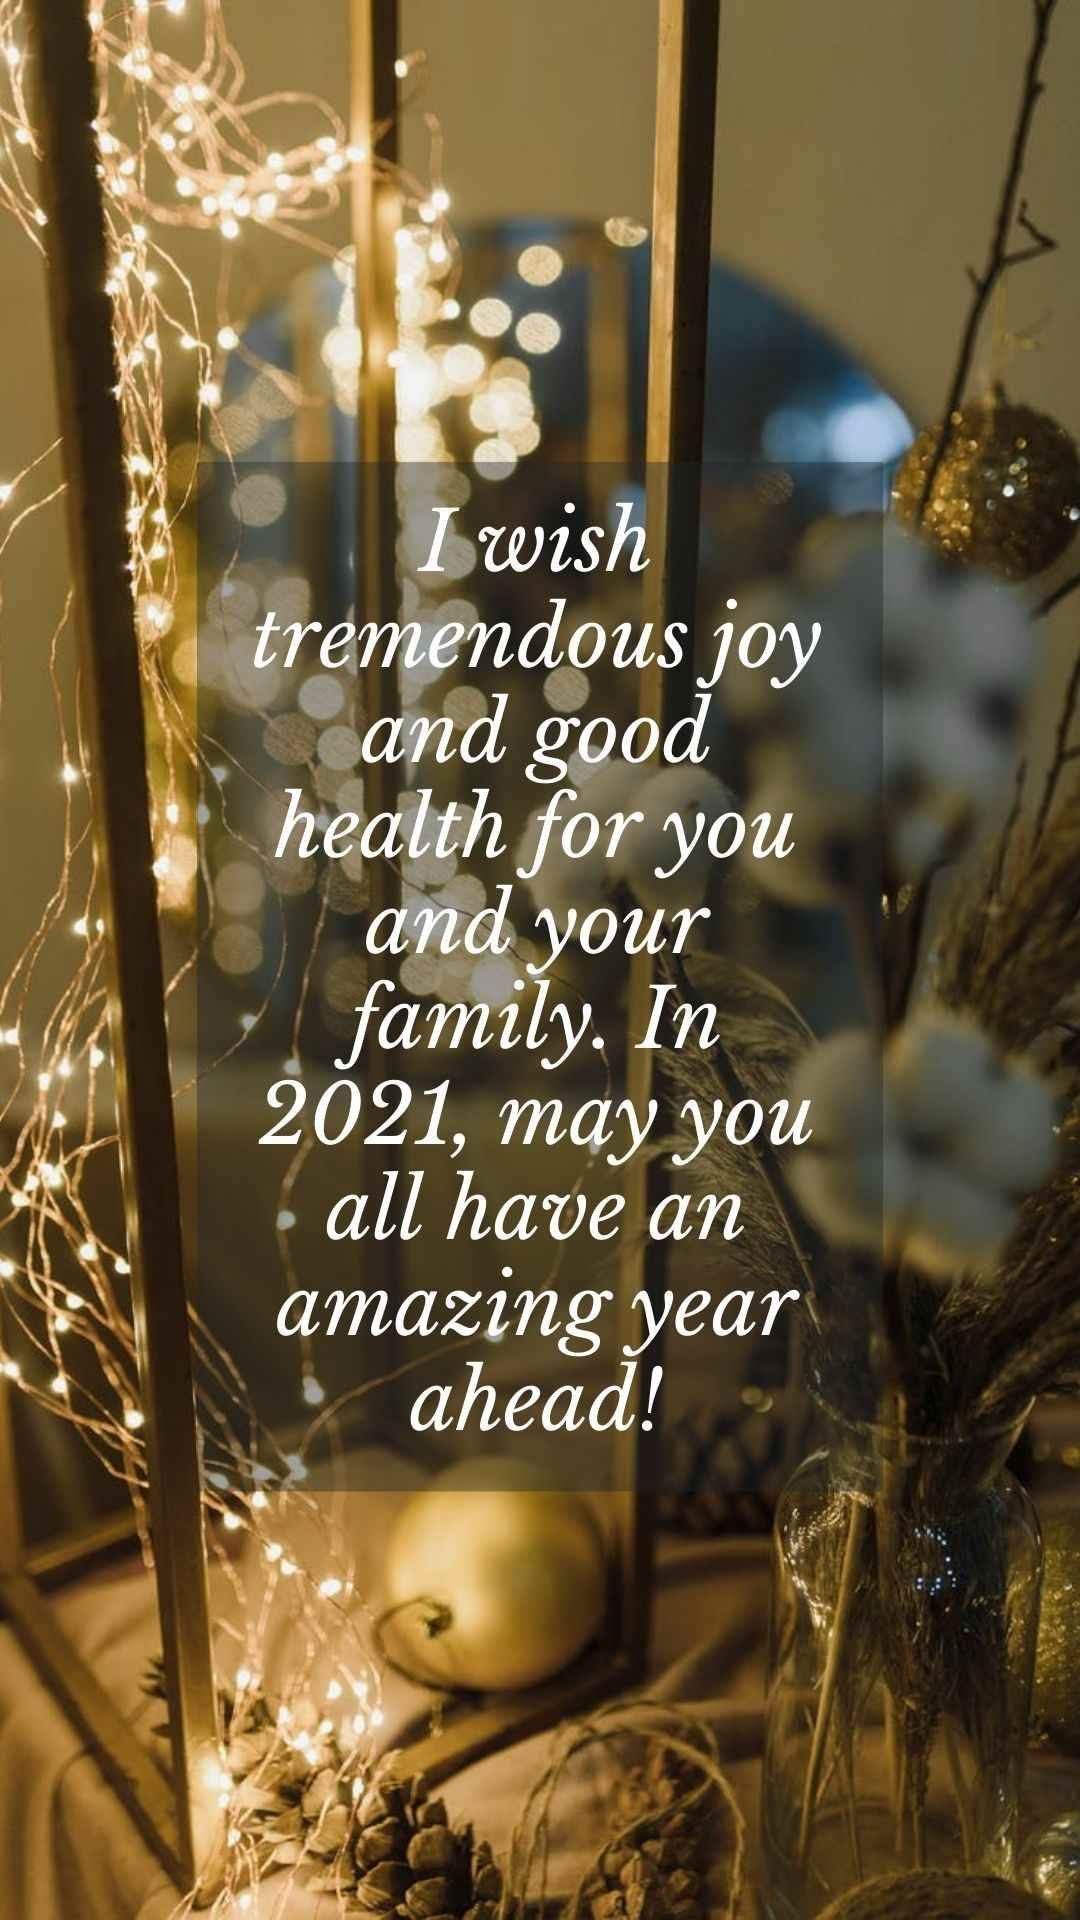 Quotes For Friends New Year 2021